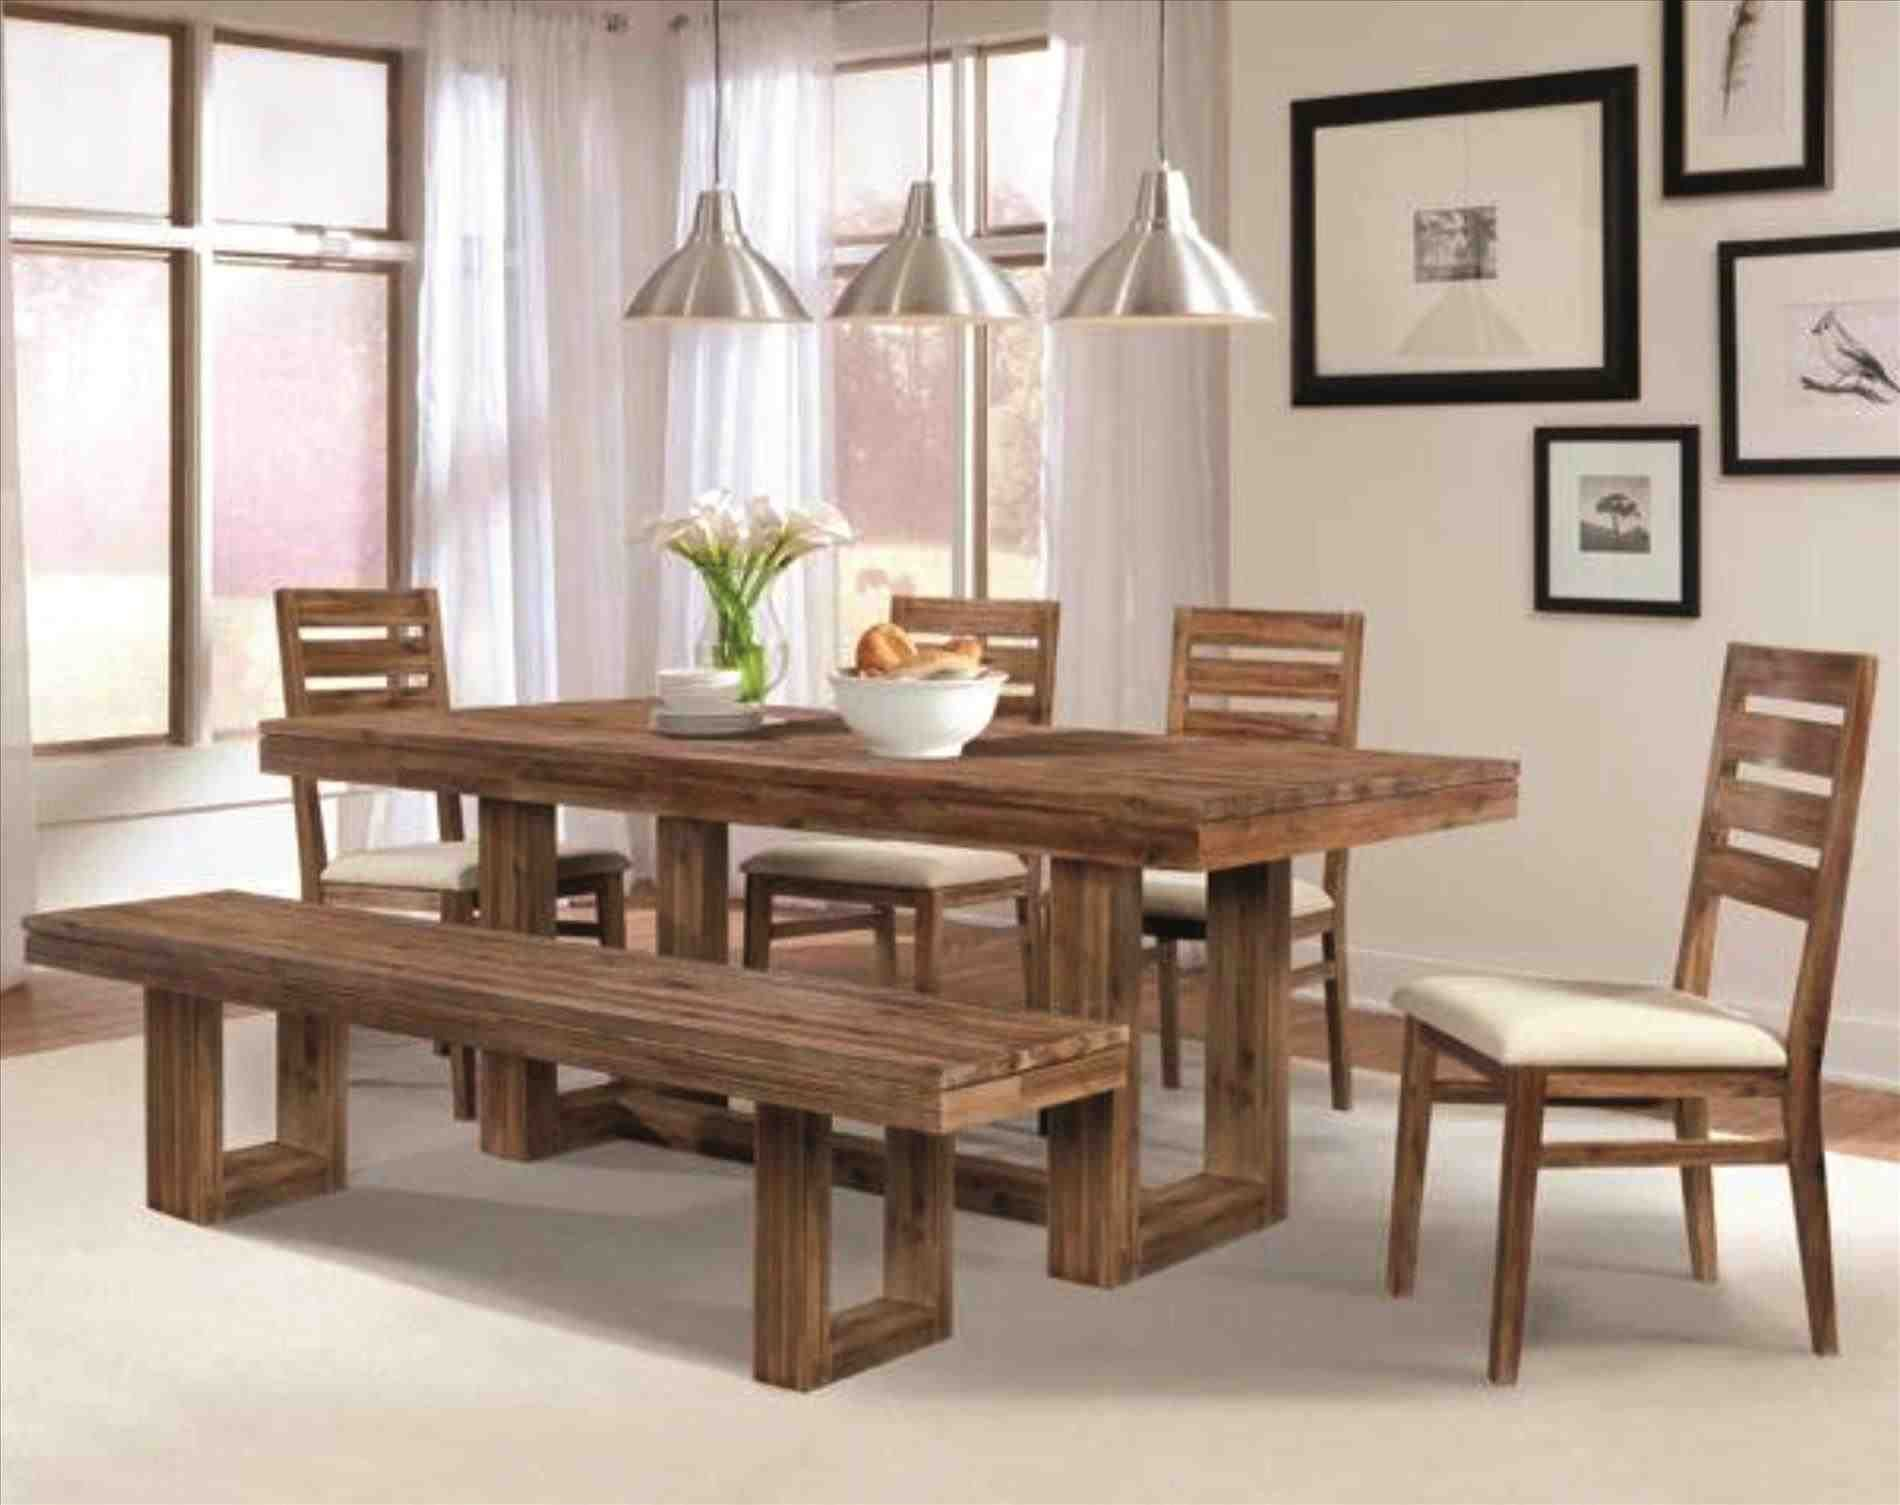 New post modern kitchen table with bench and chairs decors ideas